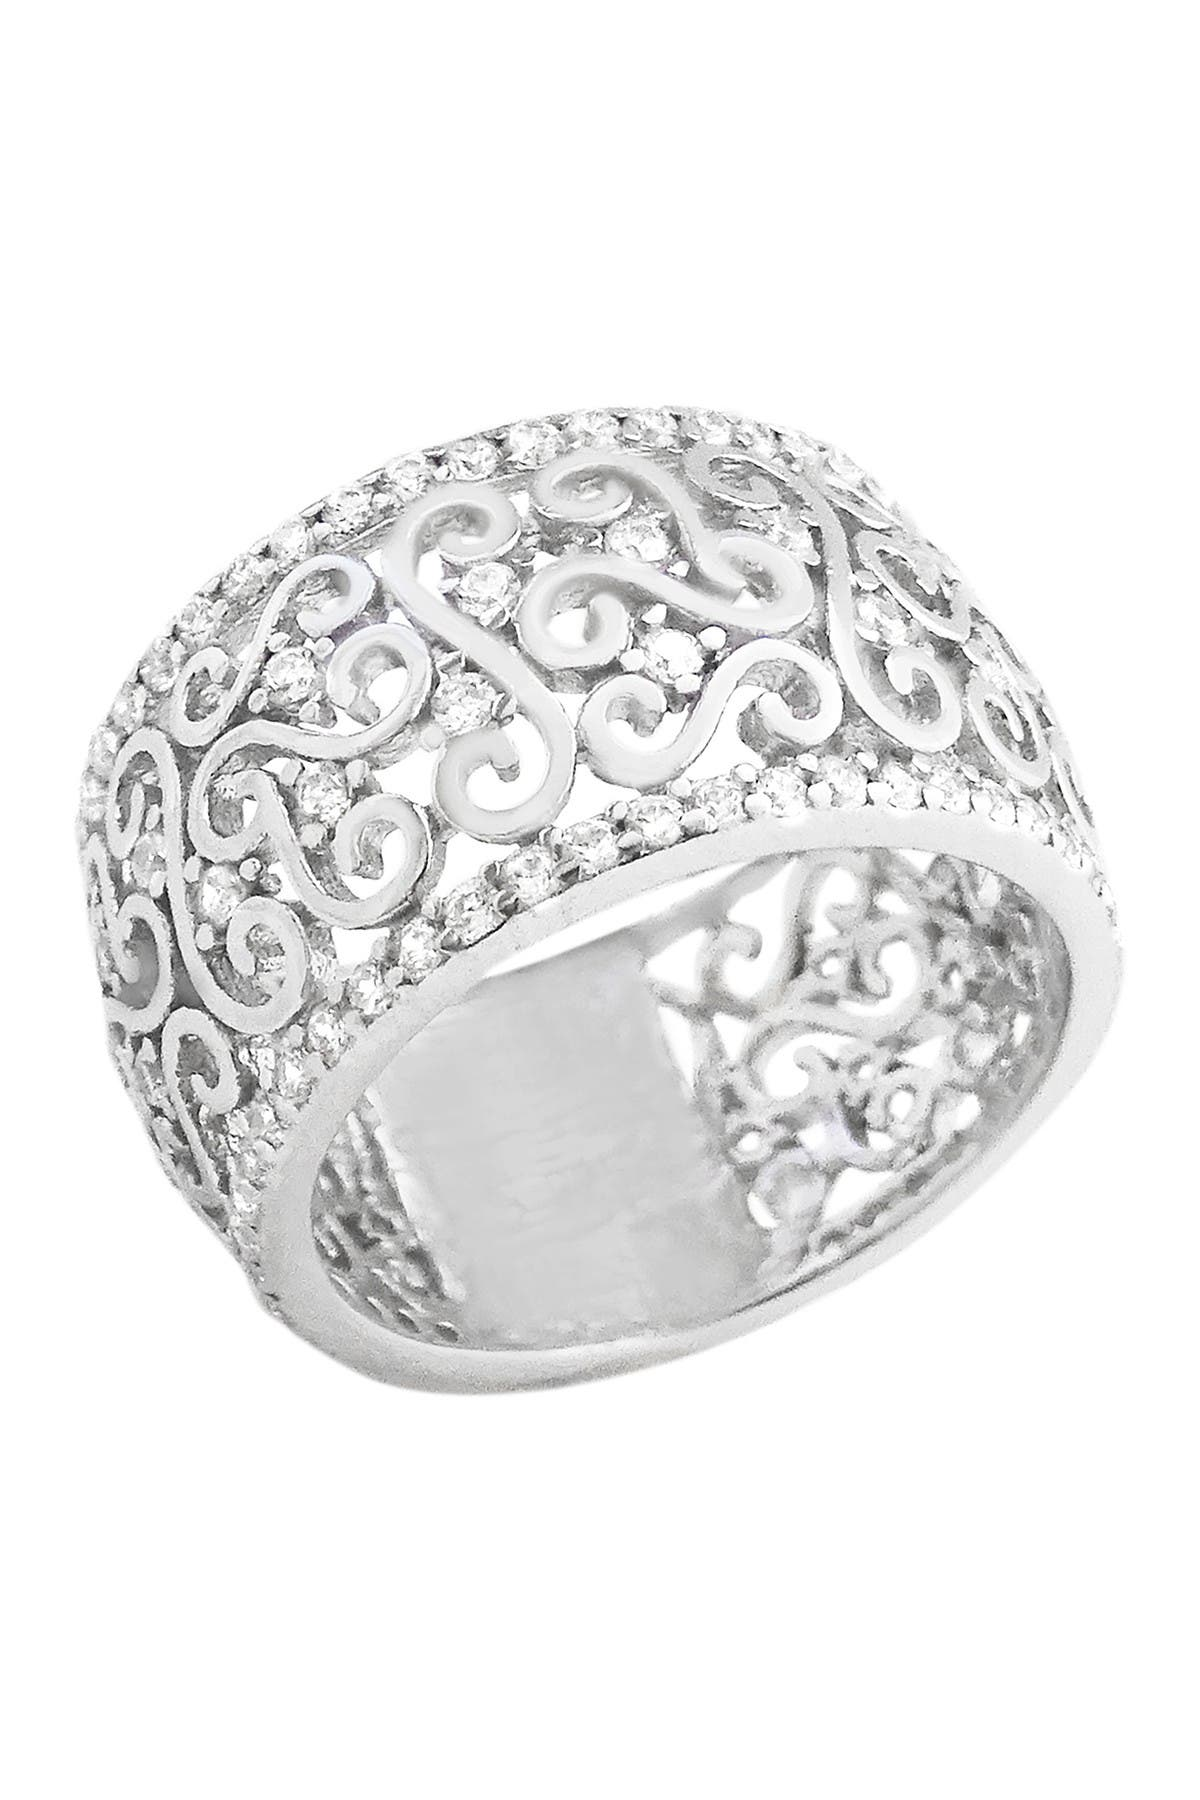 Image of Savvy Cie Sterling Silver Pave CZ Filigree Eternity Band Ring